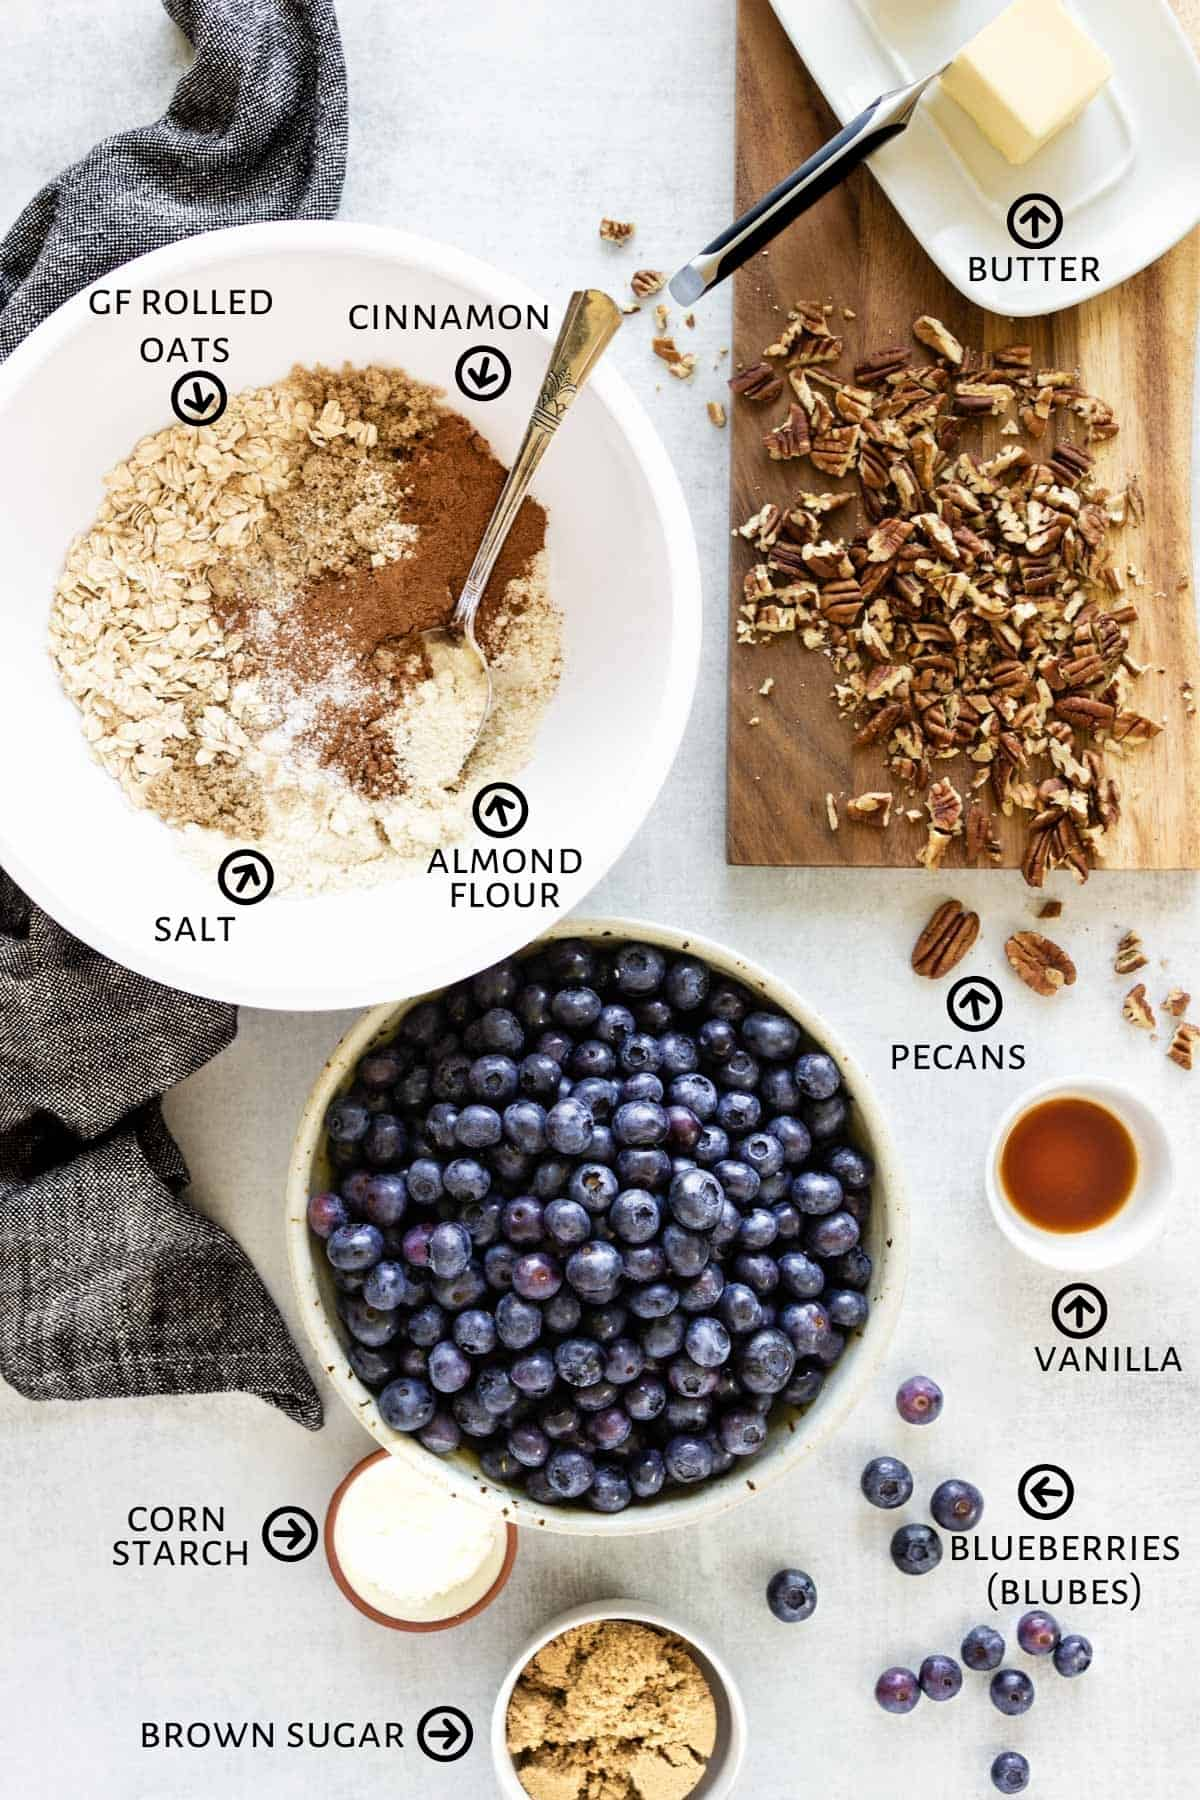 Ingredients for blueberry crisp are spread out on a counter.